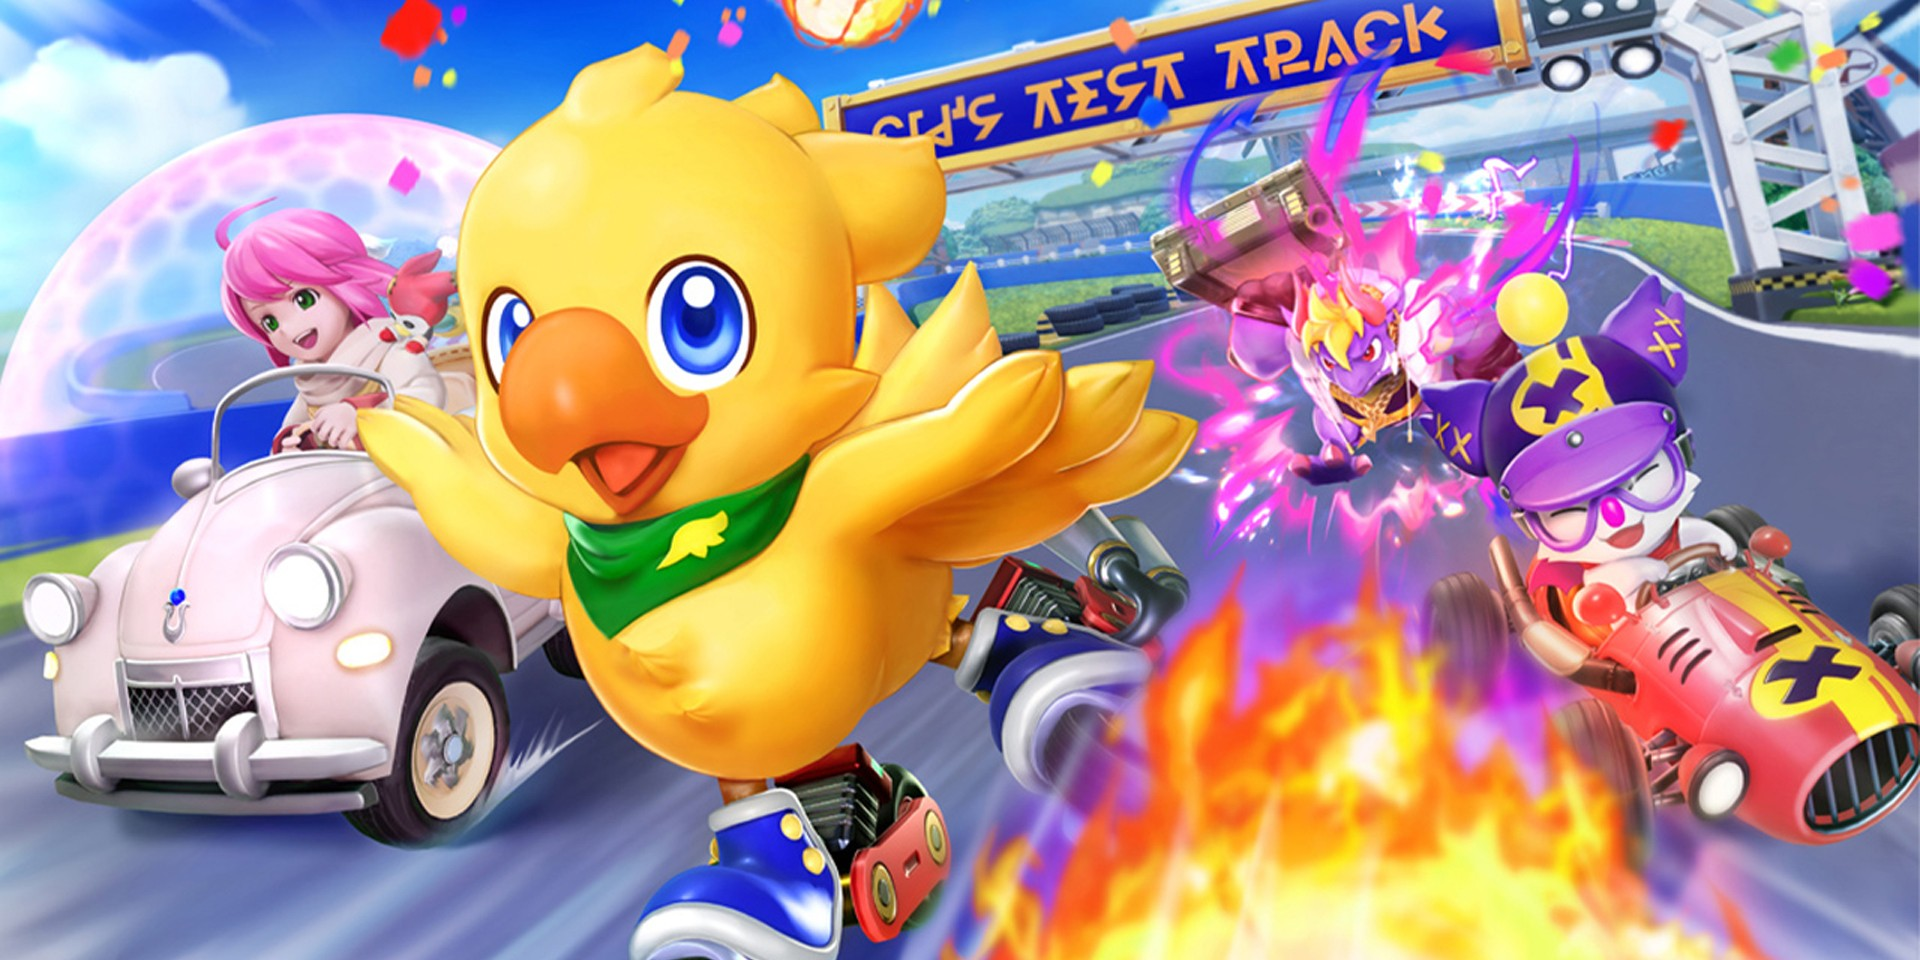 Hit the race track with your favorite Final Fantasy characters on Chocobo GP